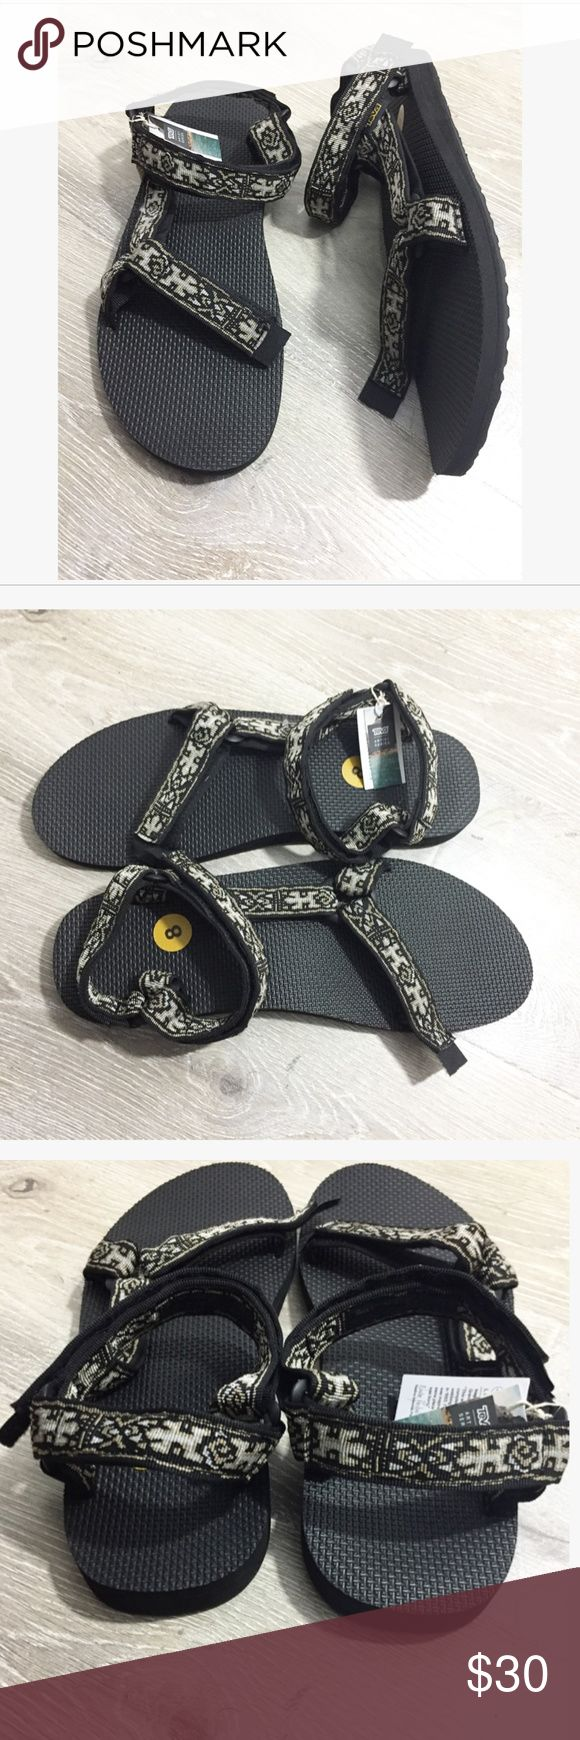 TEVA-Universal Orignial Men's Sandals Velcro closure Size 8 (size 10 in women's) Mosaic design Out of box --New with tags No flaws Teva Shoes Sandals & Flip-Flops